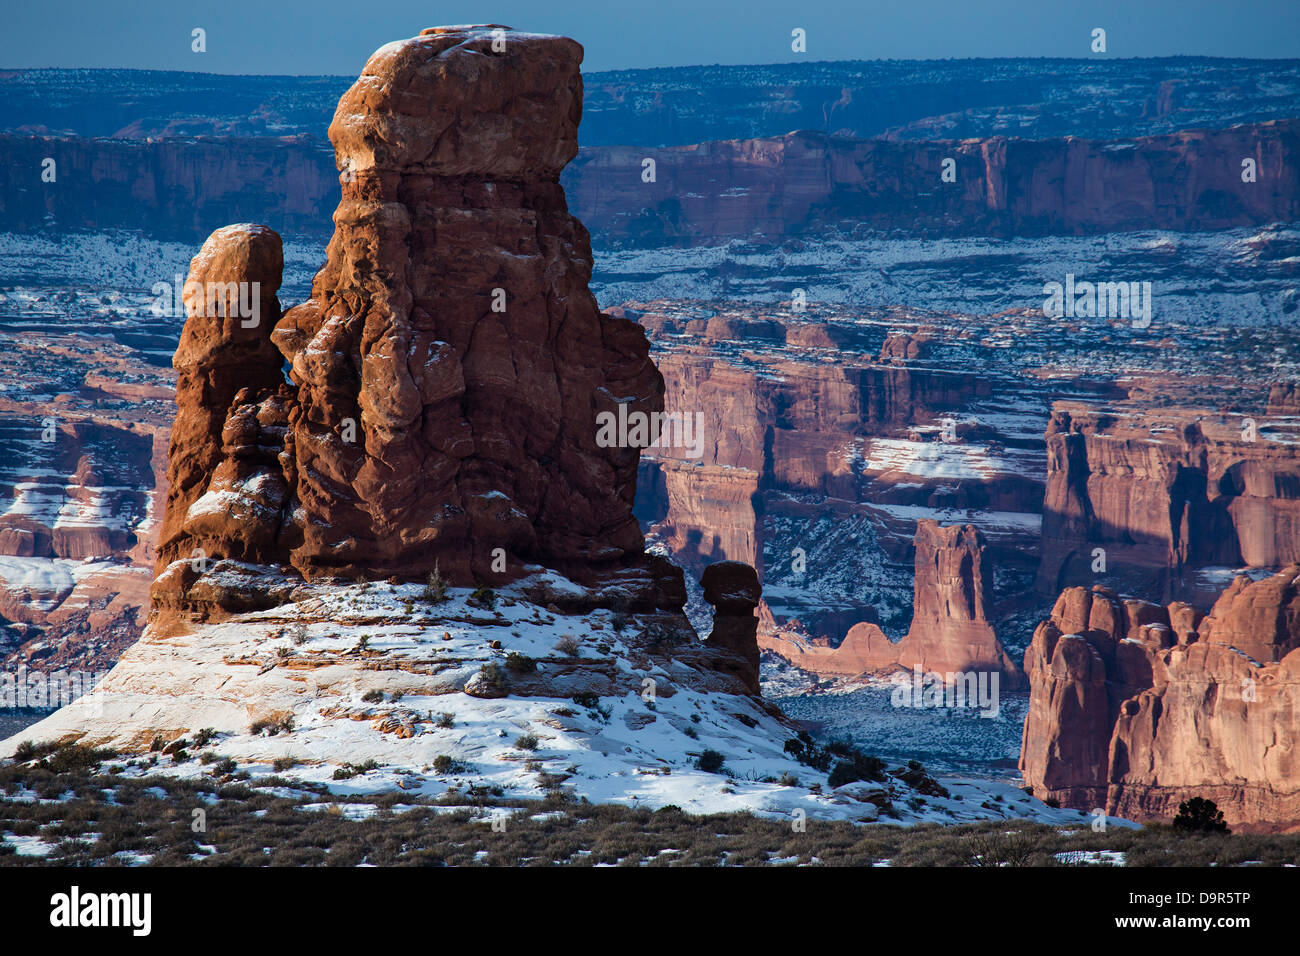 a rock stack in the region of the petrified sand dunes with the Courthouse Towers beyond, Arches National Park, - Stock Image